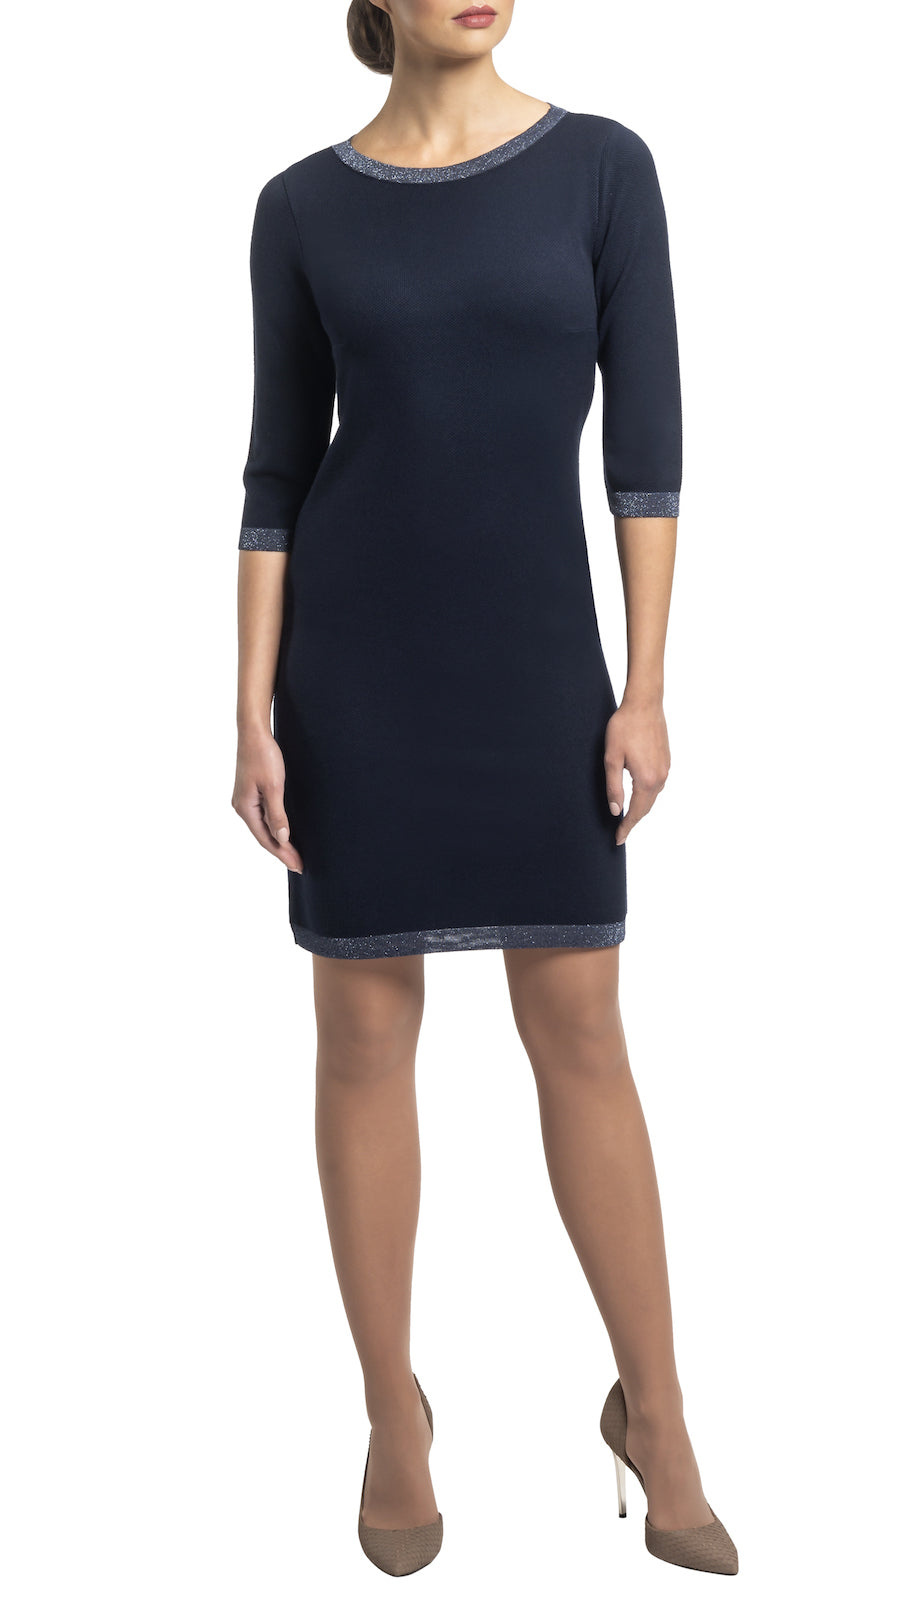 CONTEMPO Gabbie piquet knit dress, Navy/Metallic Blue